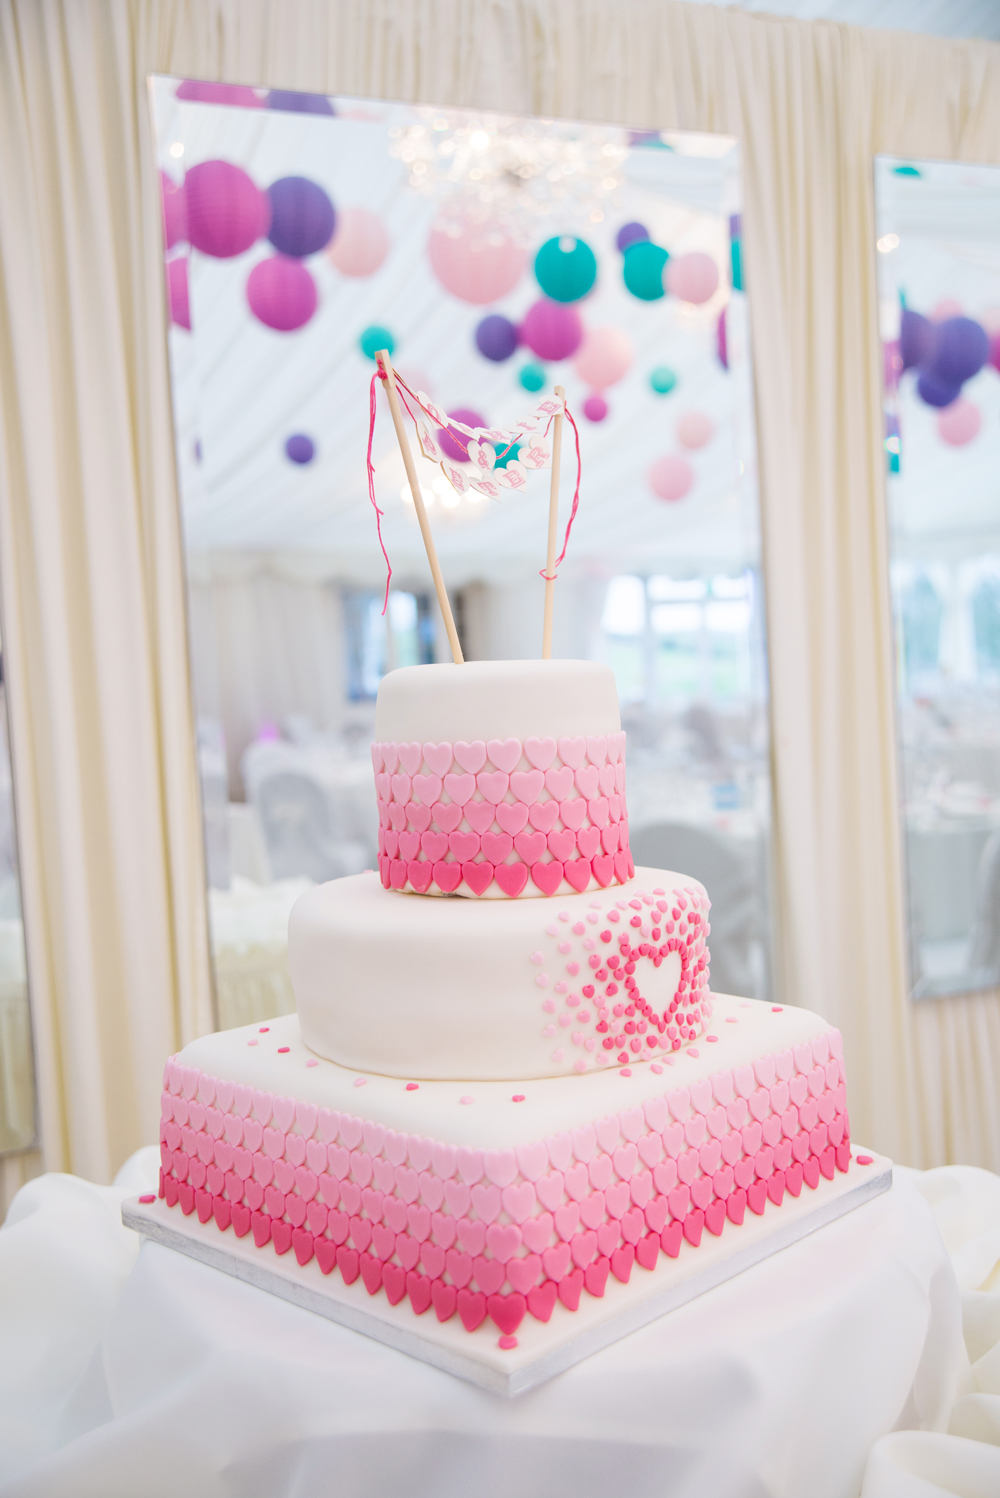 Pete 's Mum, Sandra Lindsay, made our awesome wedding cake...over three hundred hearts on it!